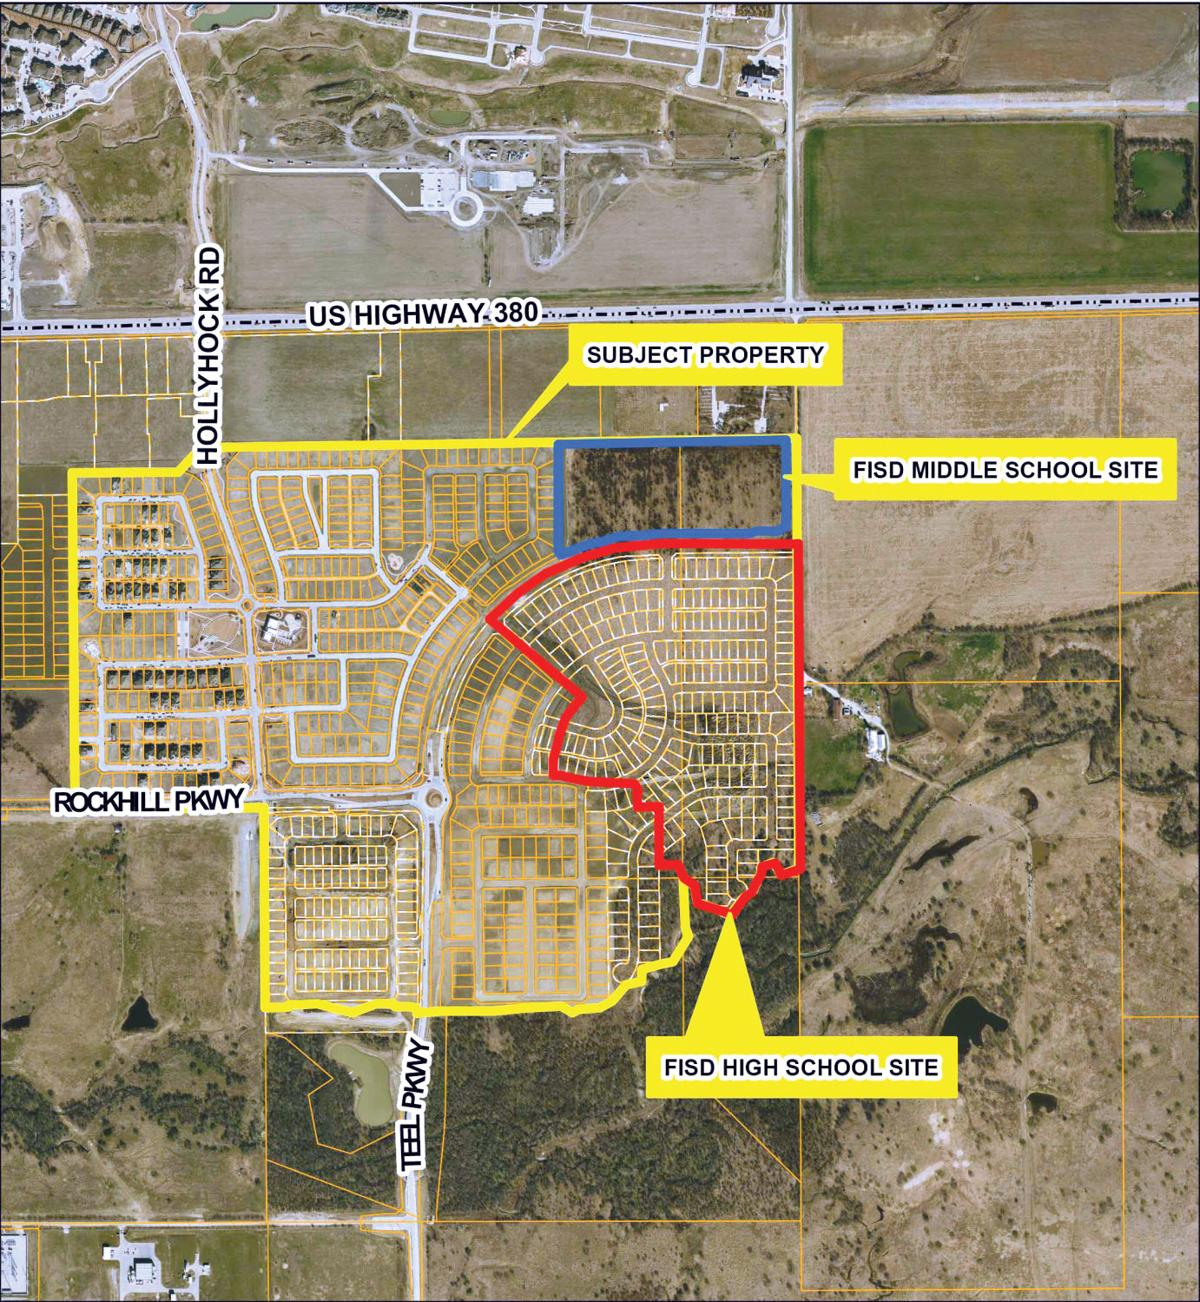 Middle, high school lots in FISD